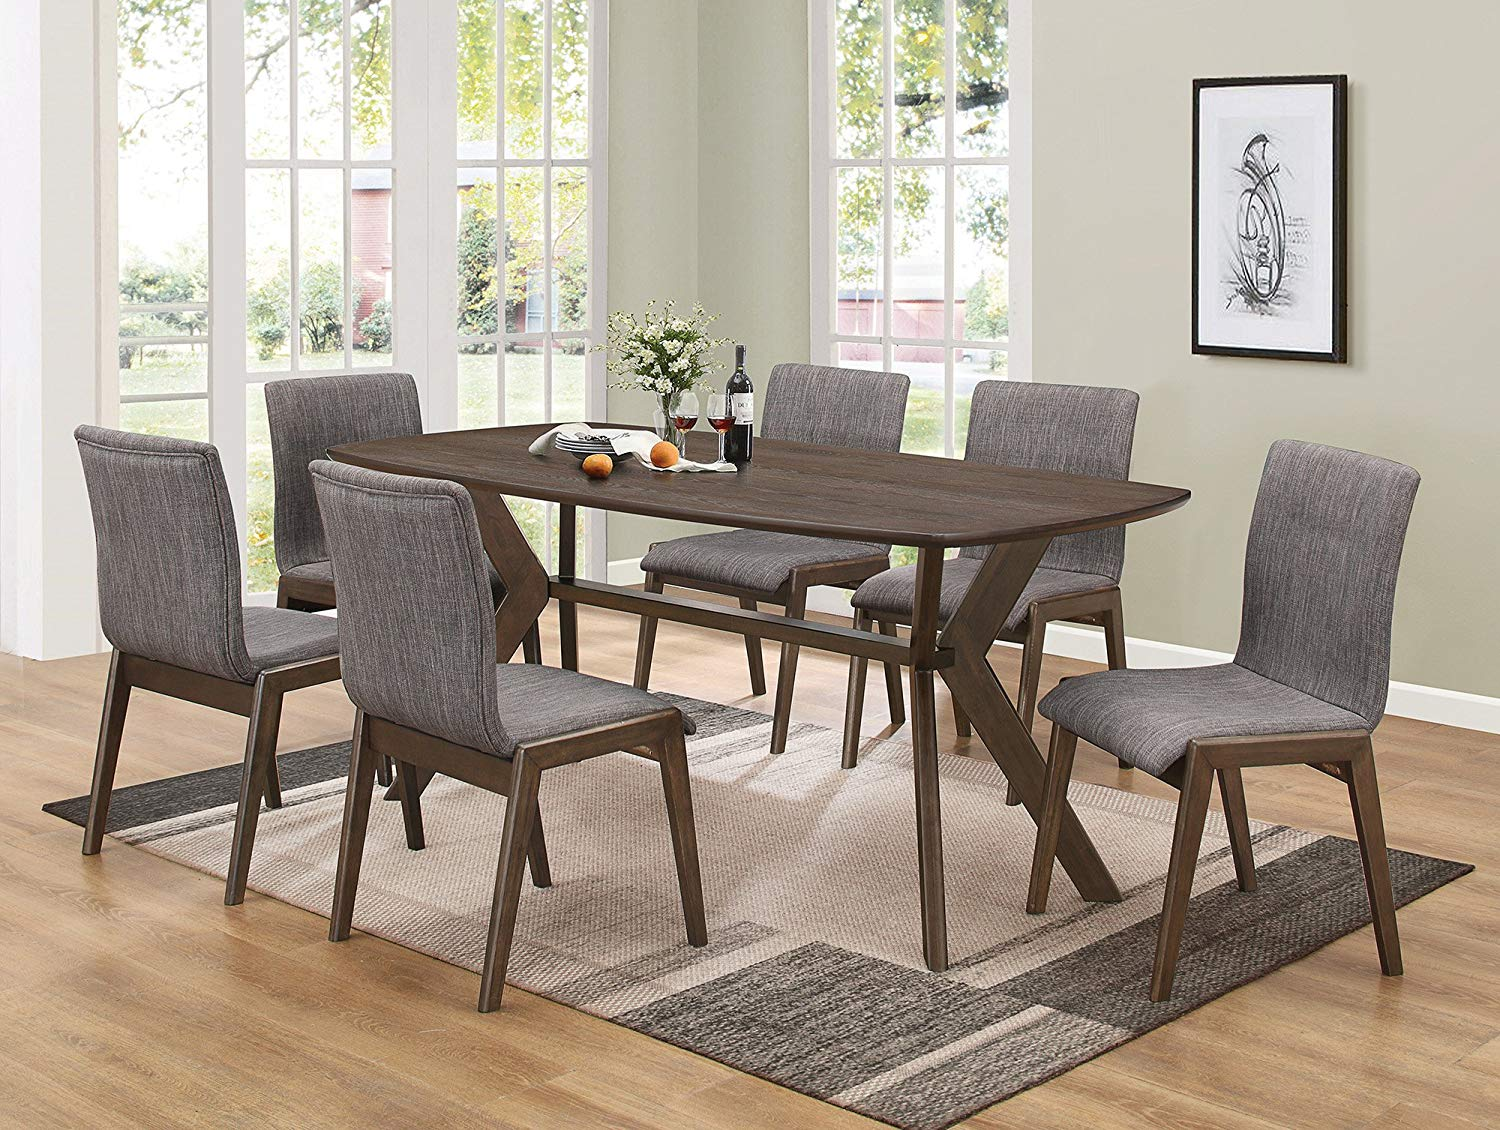 Coaster 107192-CO Mcbride Dining Dining Chair